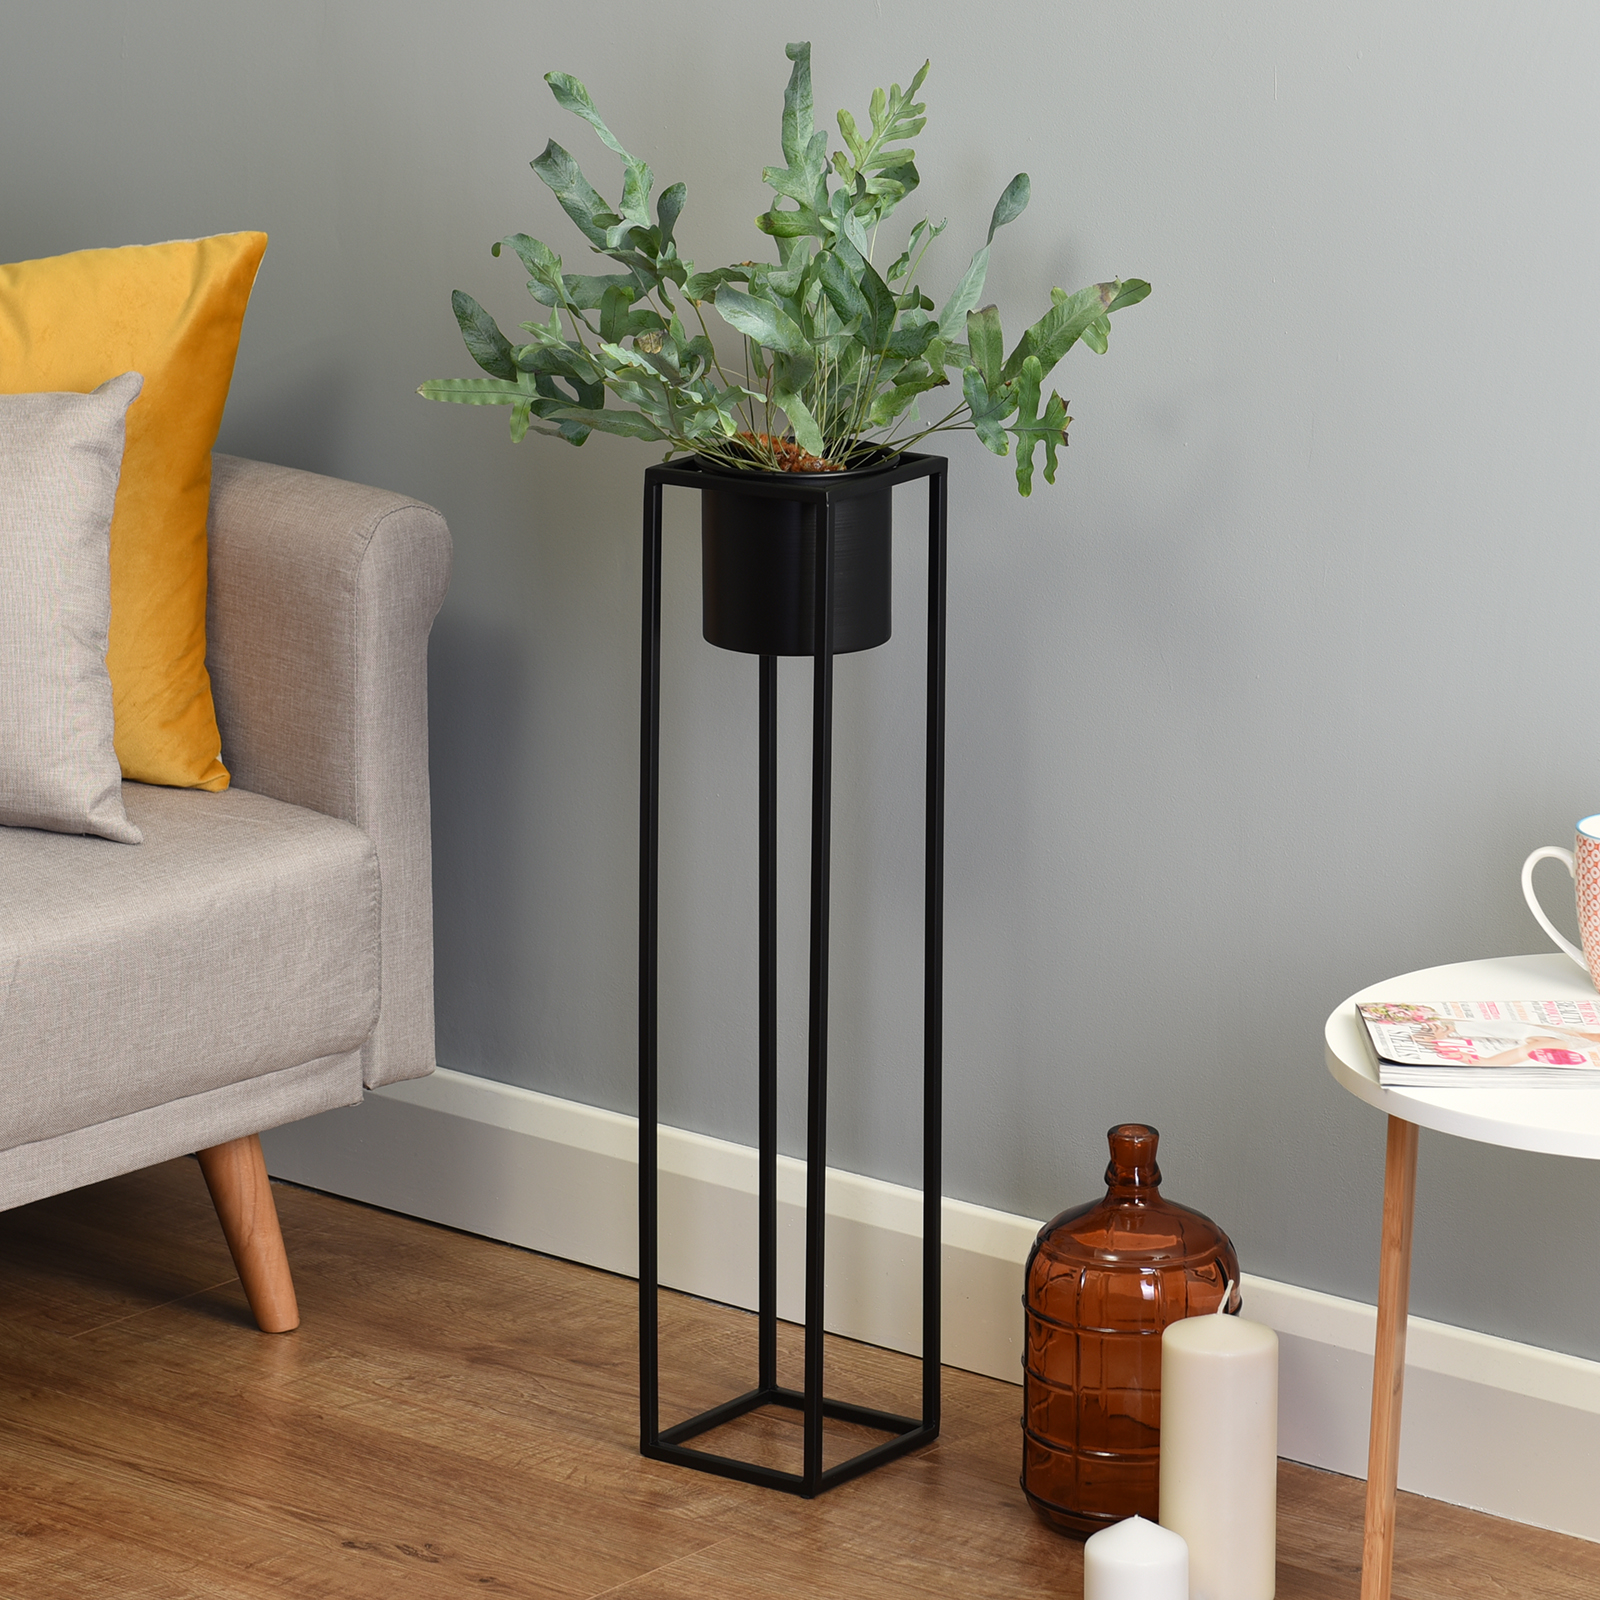 Hartleys-Small-Round-Freestanding-Black-Metal-Plant-Pot-Tall-Square-Floor-Stand thumbnail 17